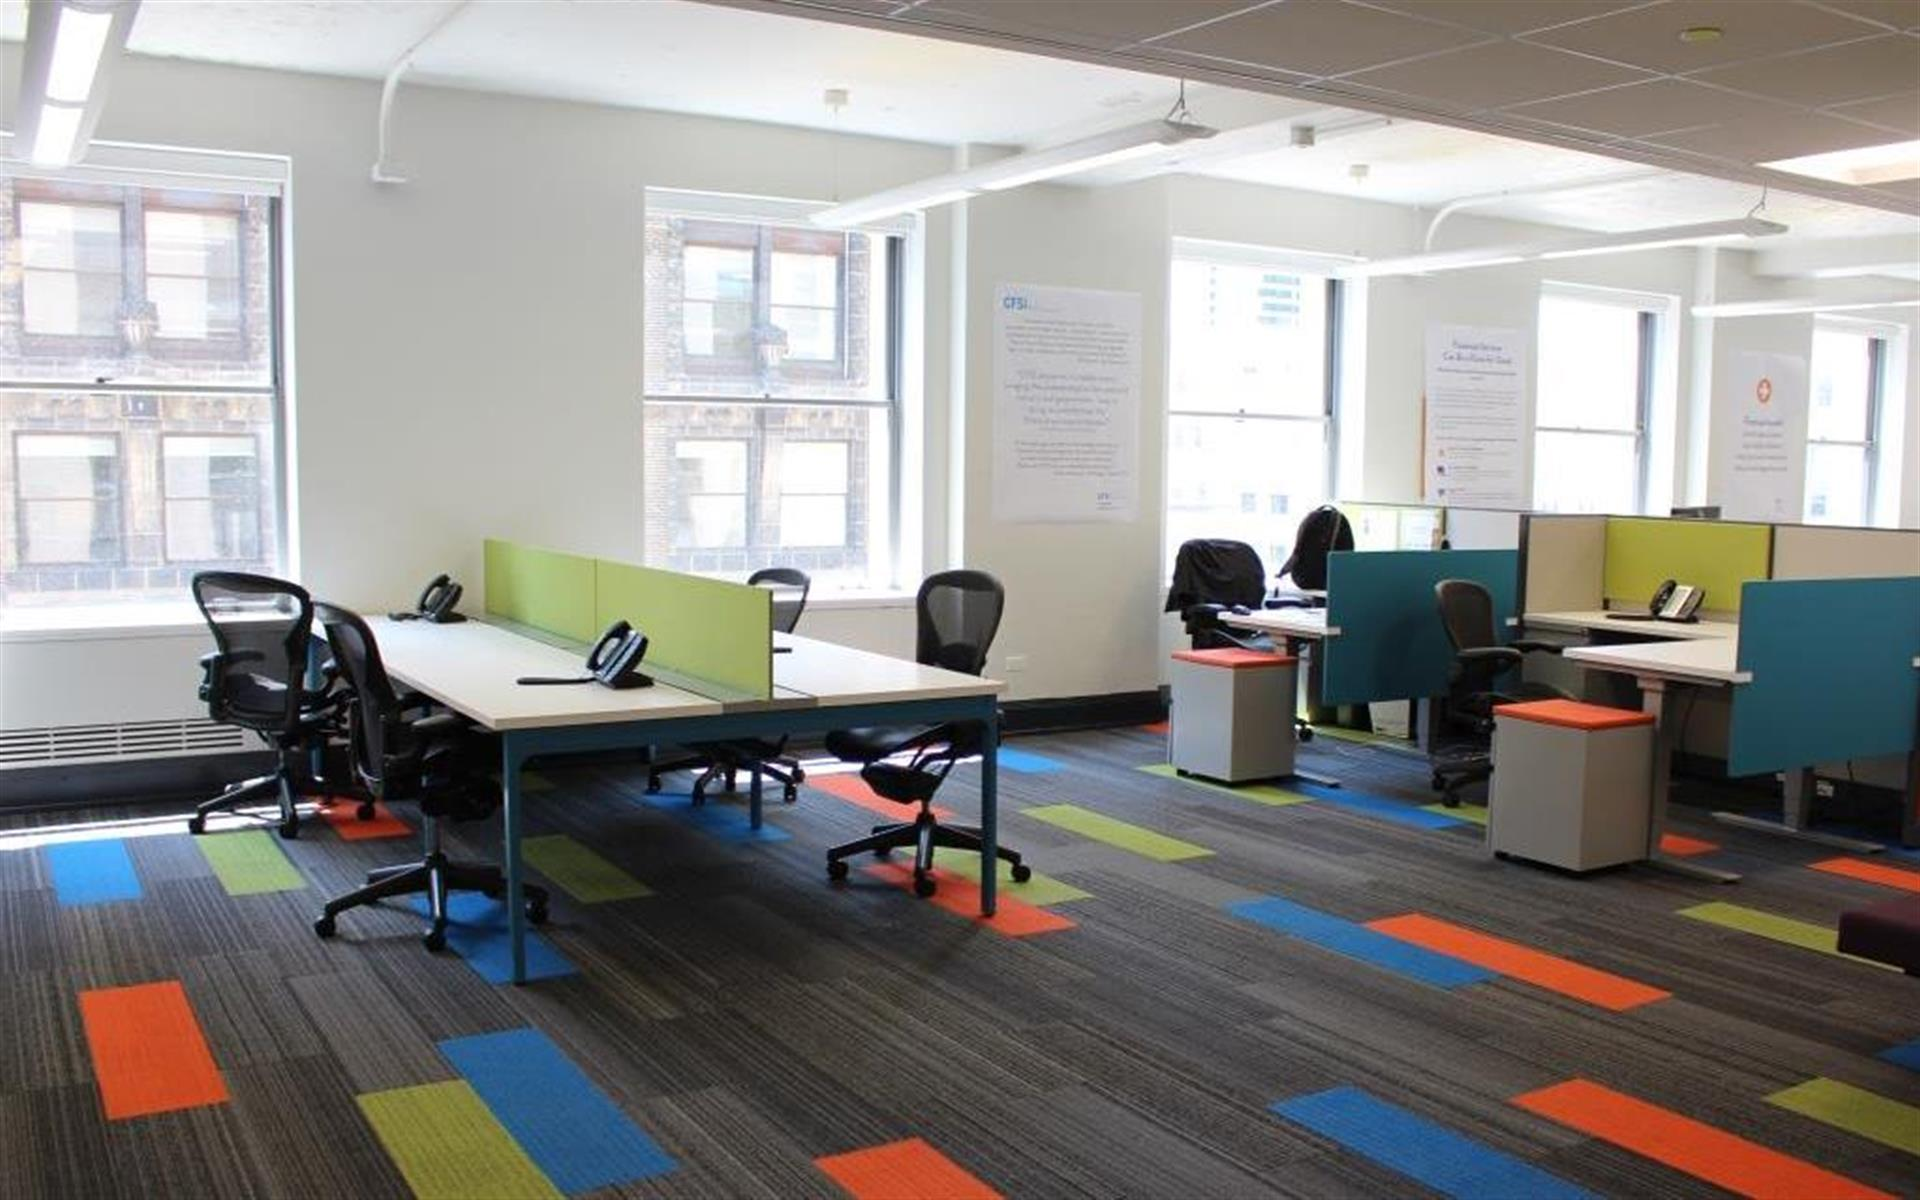 Center for Financial Services Innovation - Benching Station in Central Loop